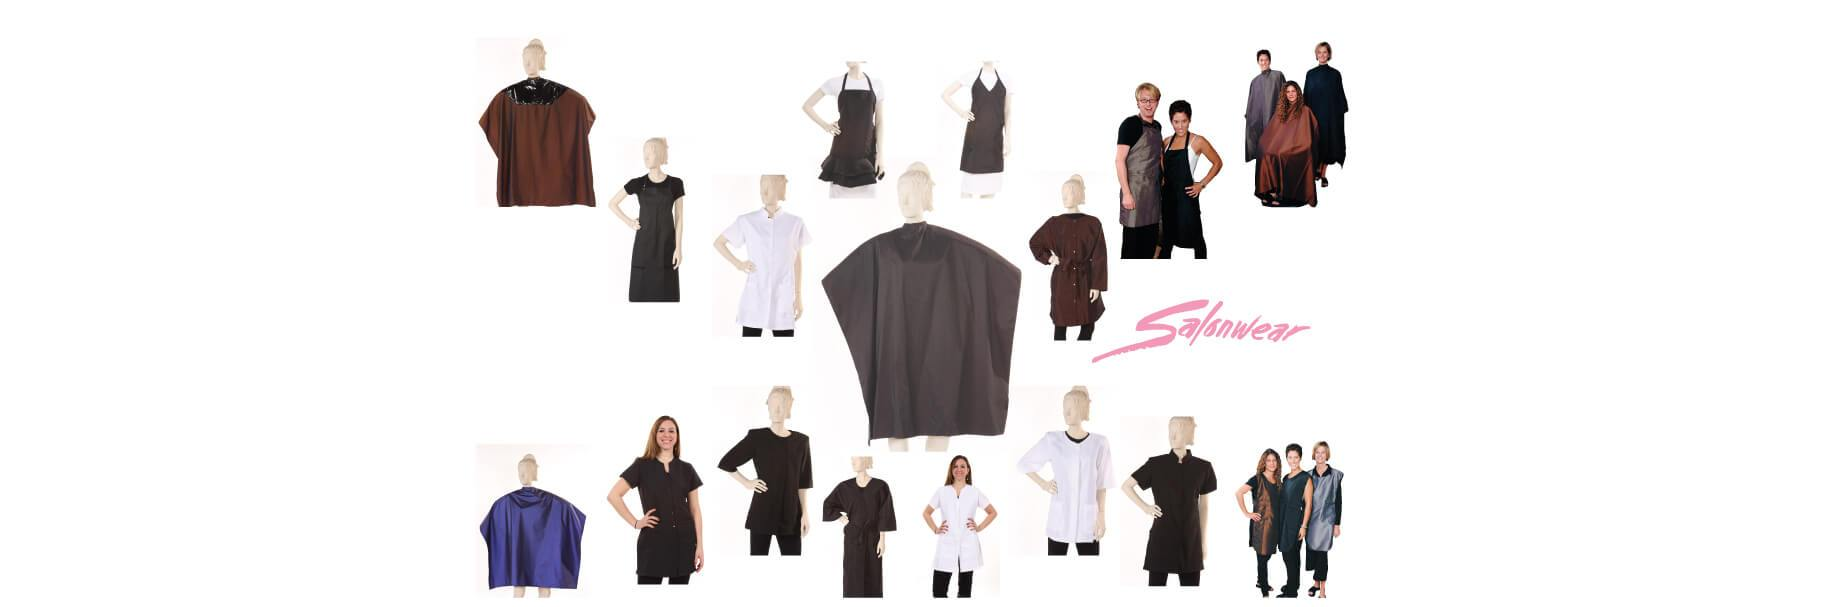 salonwear, salon wear, salon smocks, salon capes, hair stylist smocks, stylist smocks, cosmetology smocks, stylist capes